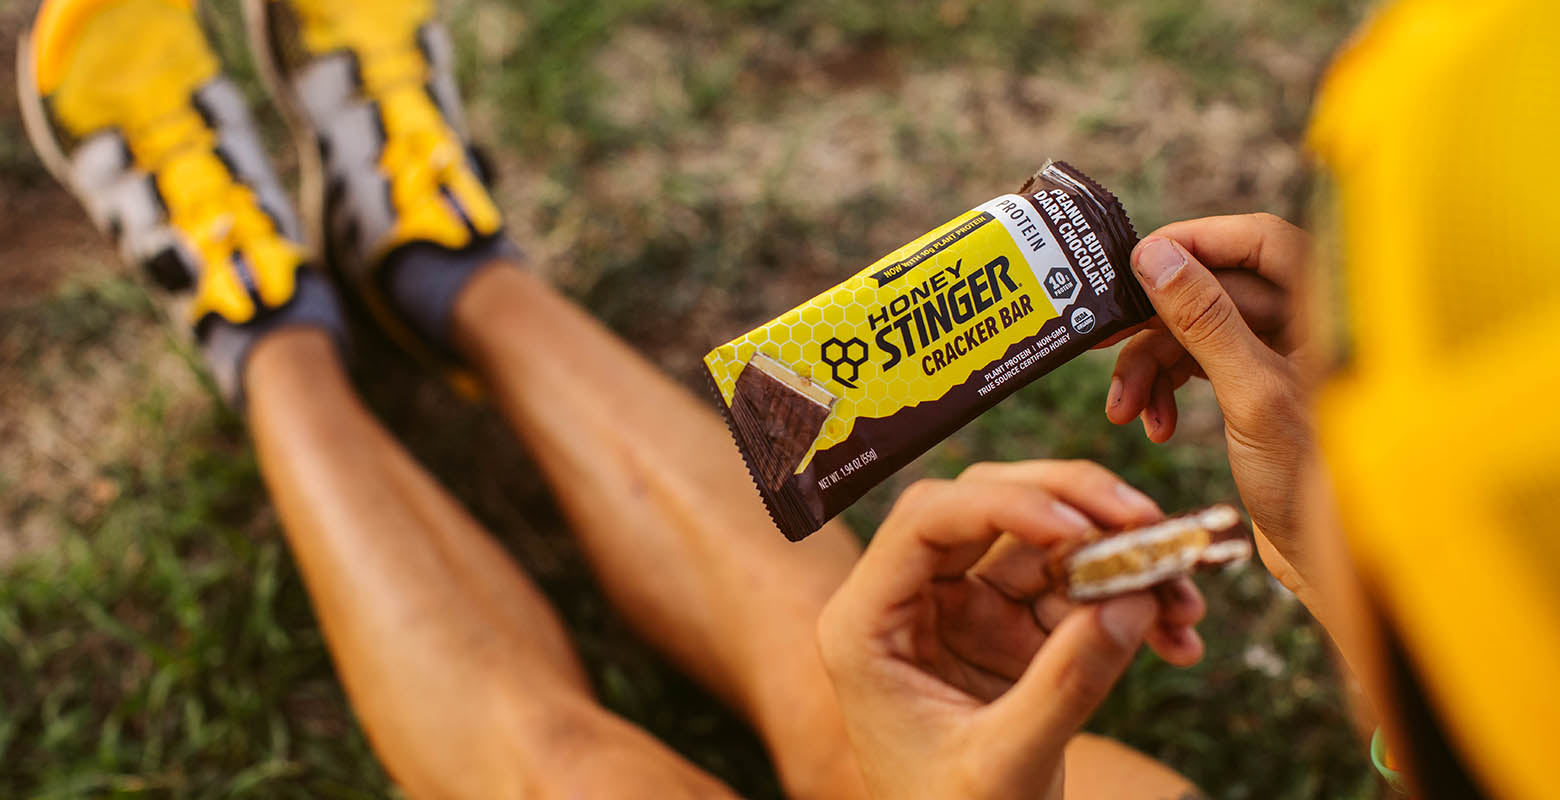 Enjoy 10g of protein in Honey Stinger's Peanut Butter Dark Chocolate Cracker Bars